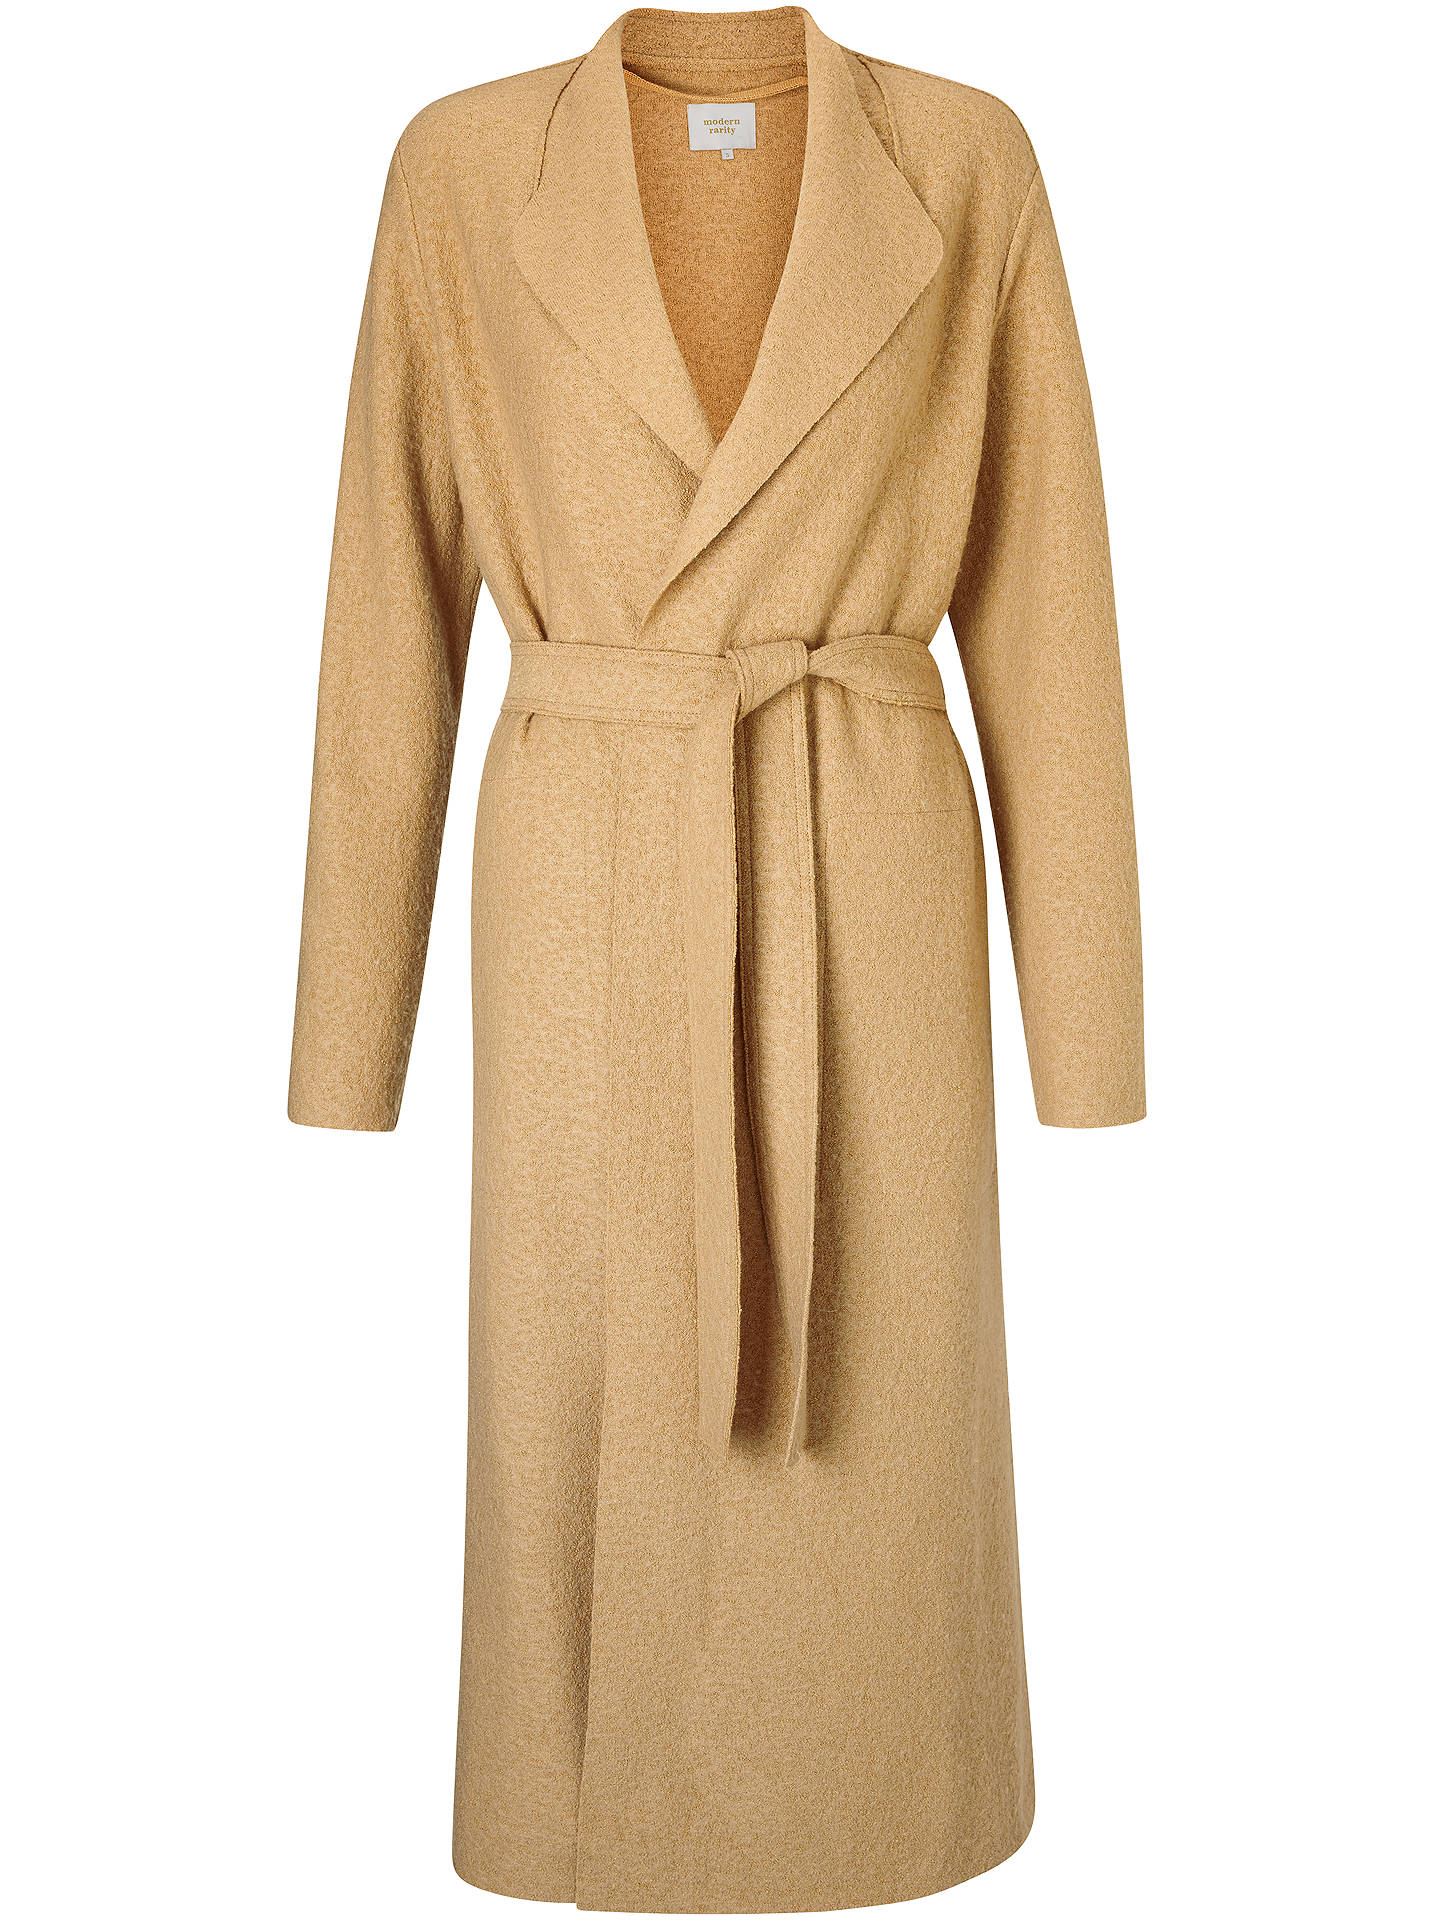 BuyModern Rarity Belted Split Coatigan, Camel, XS Online at johnlewis.com